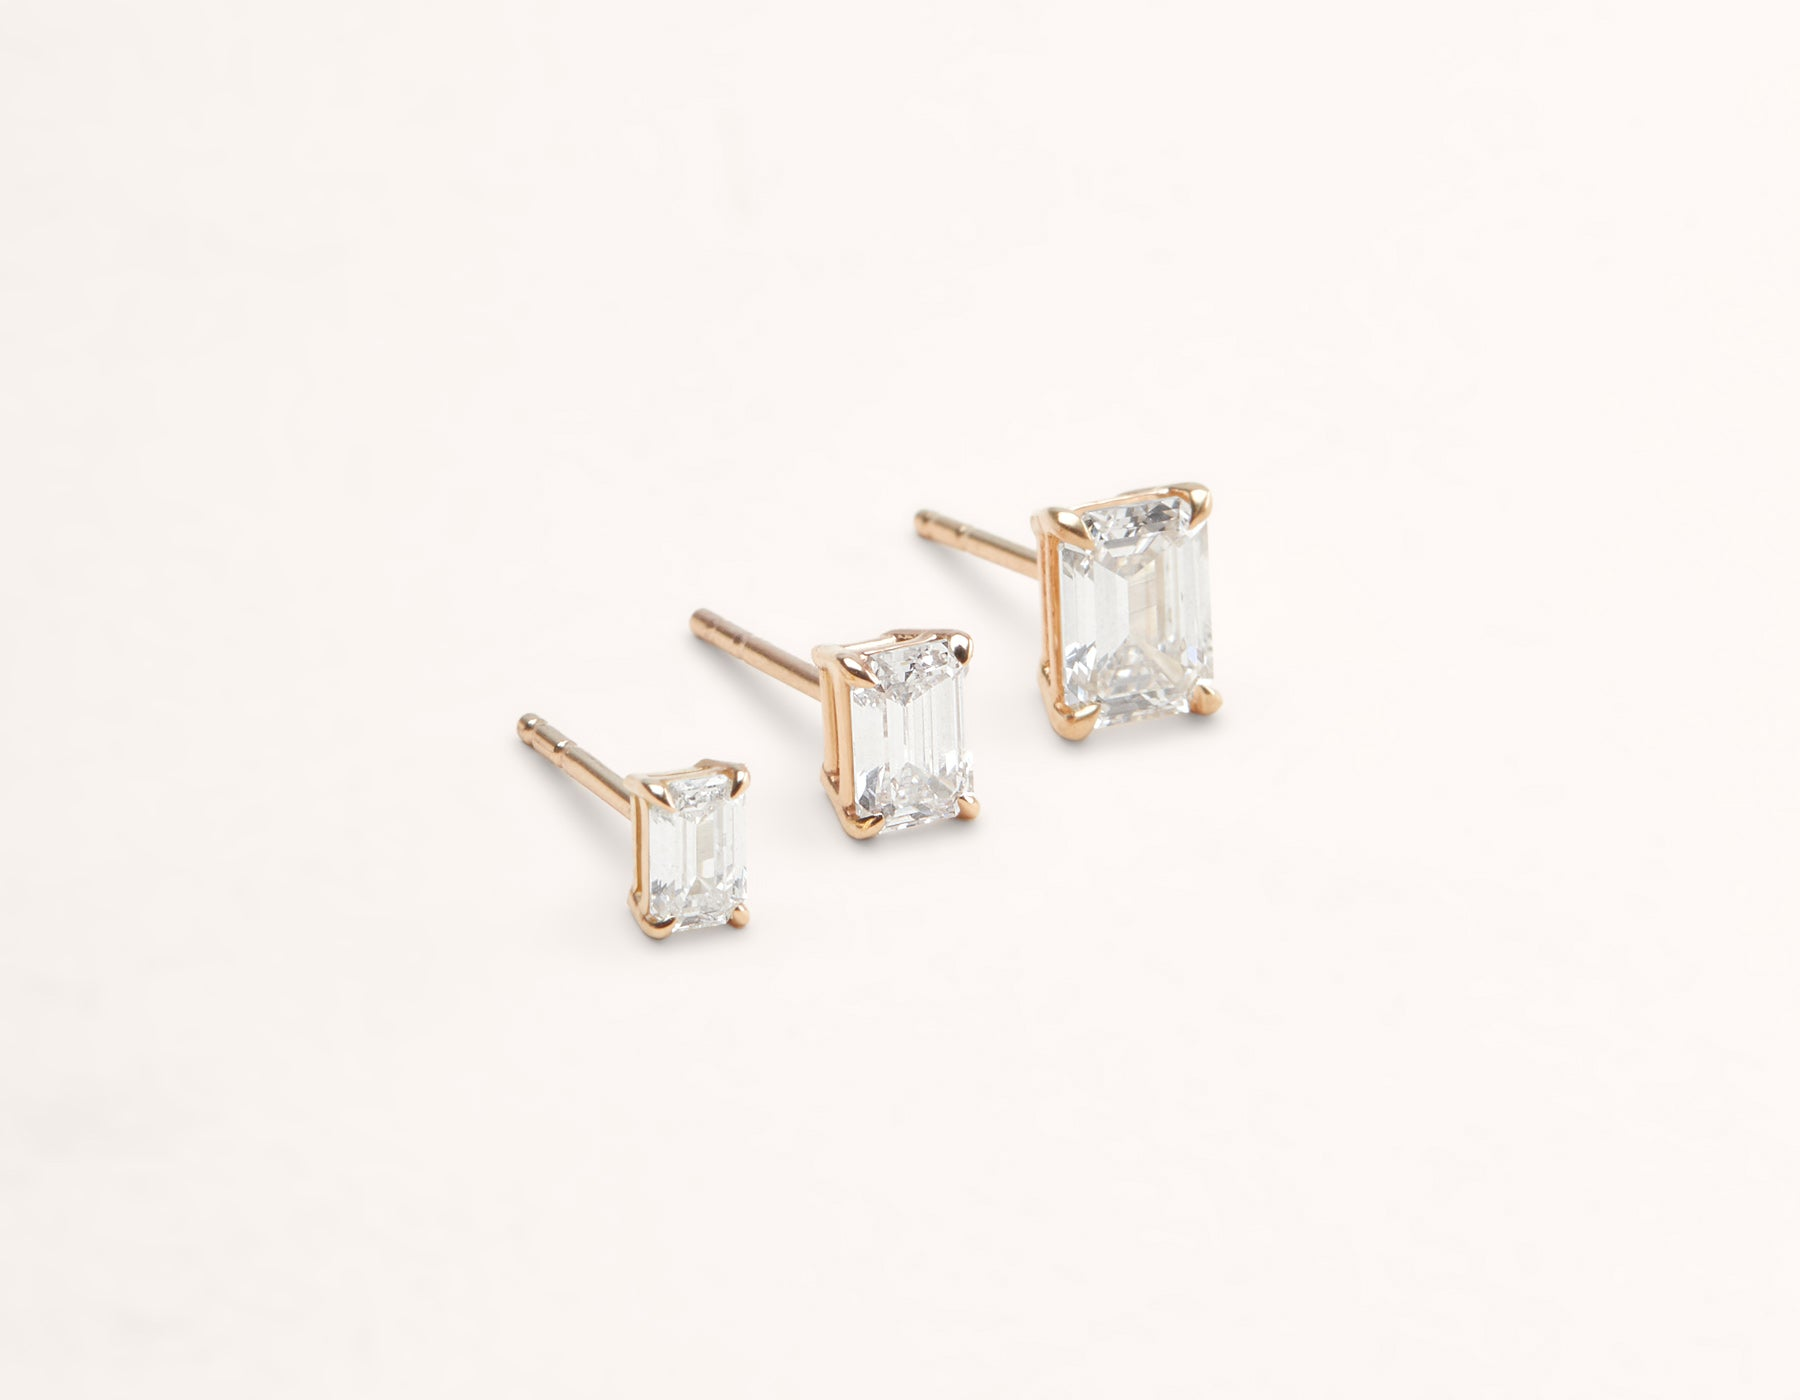 Vrai & Oro 18K Solid Gold Emerald Diamond Earring Post 1 ct .50 ct .25 ct, 18K Rose Gold